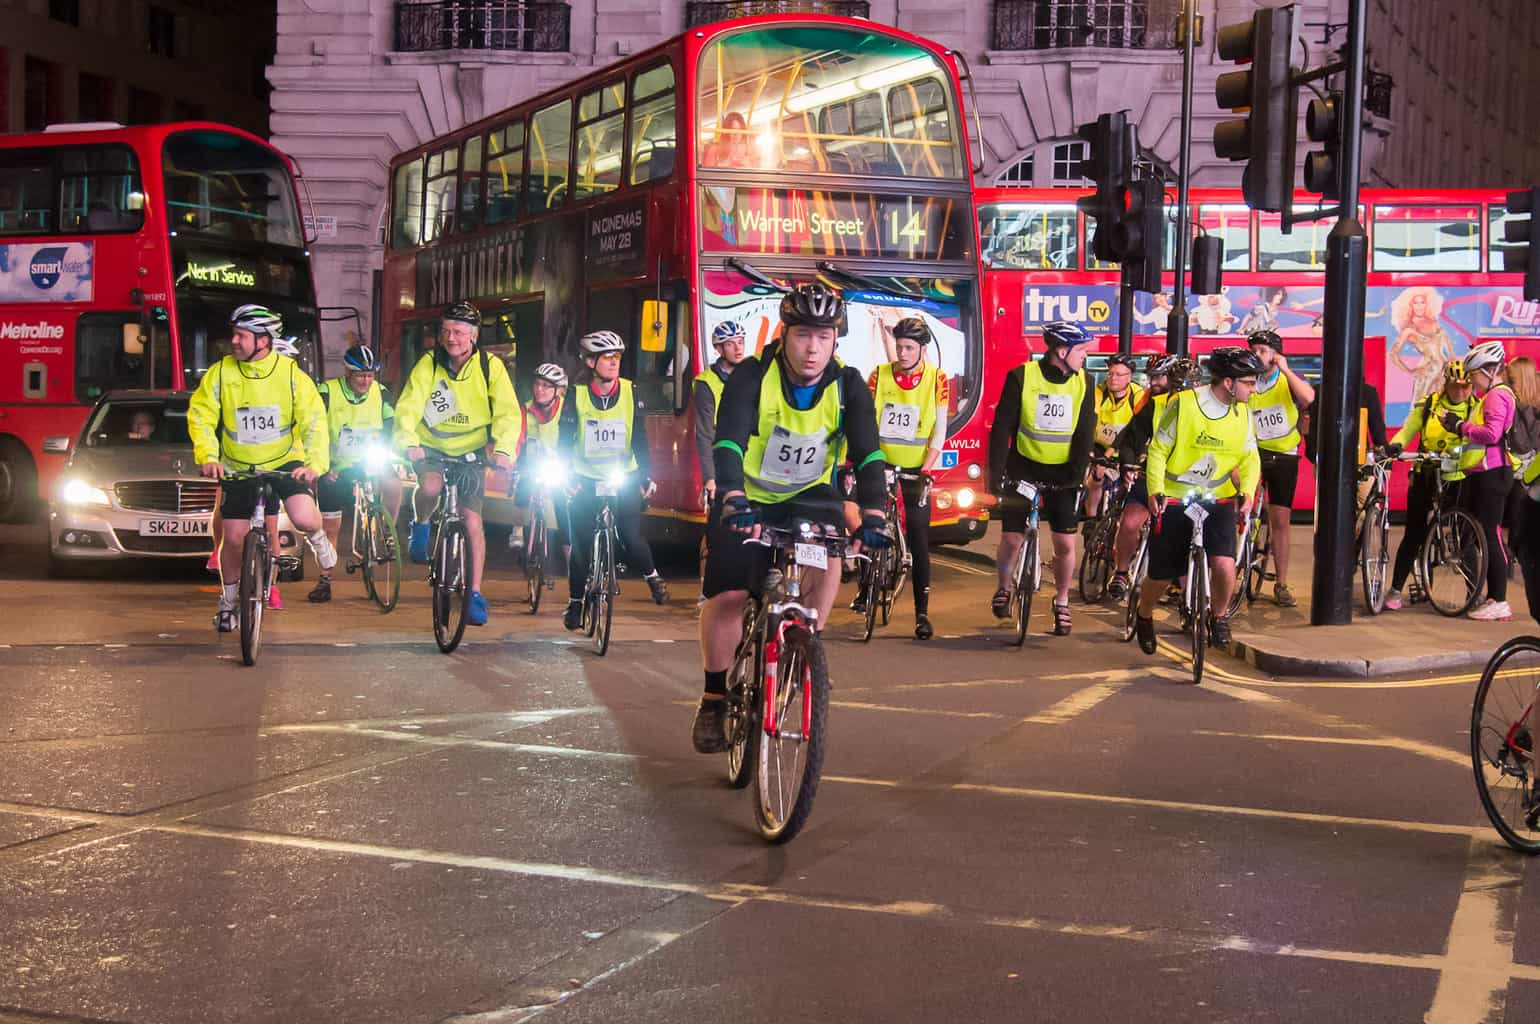 Cyclists in London Nightrider charity event